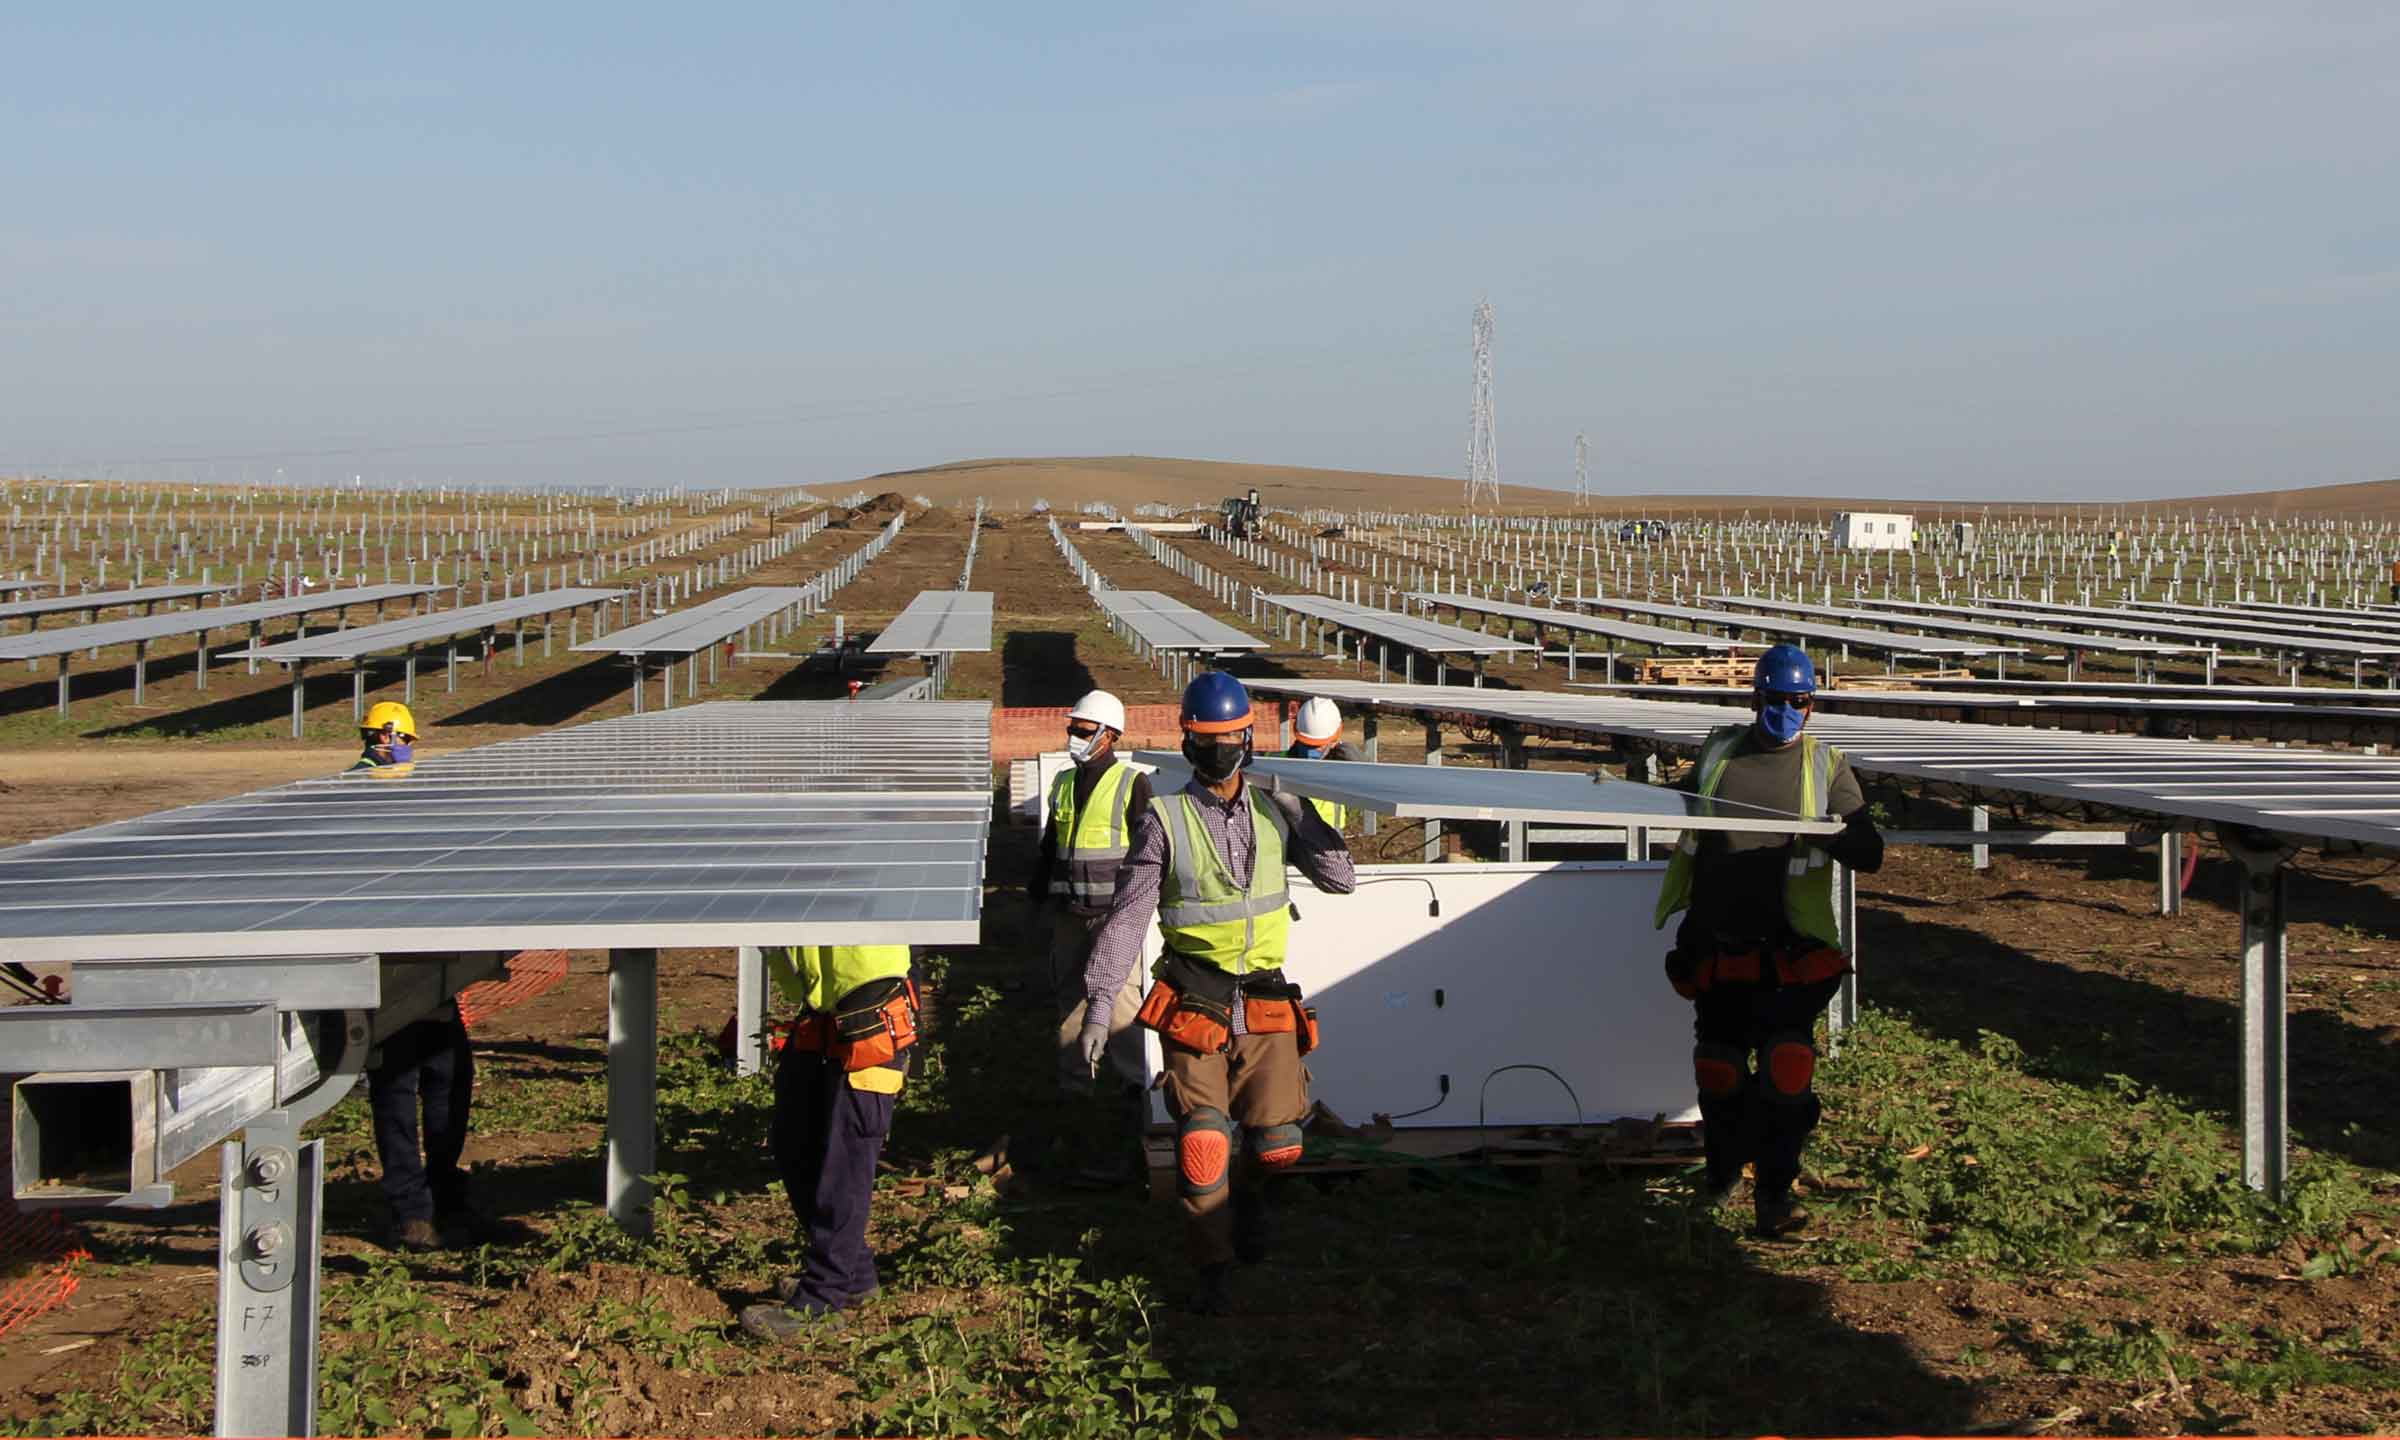 Construction works for a photovoltaic plant in Andalusia.